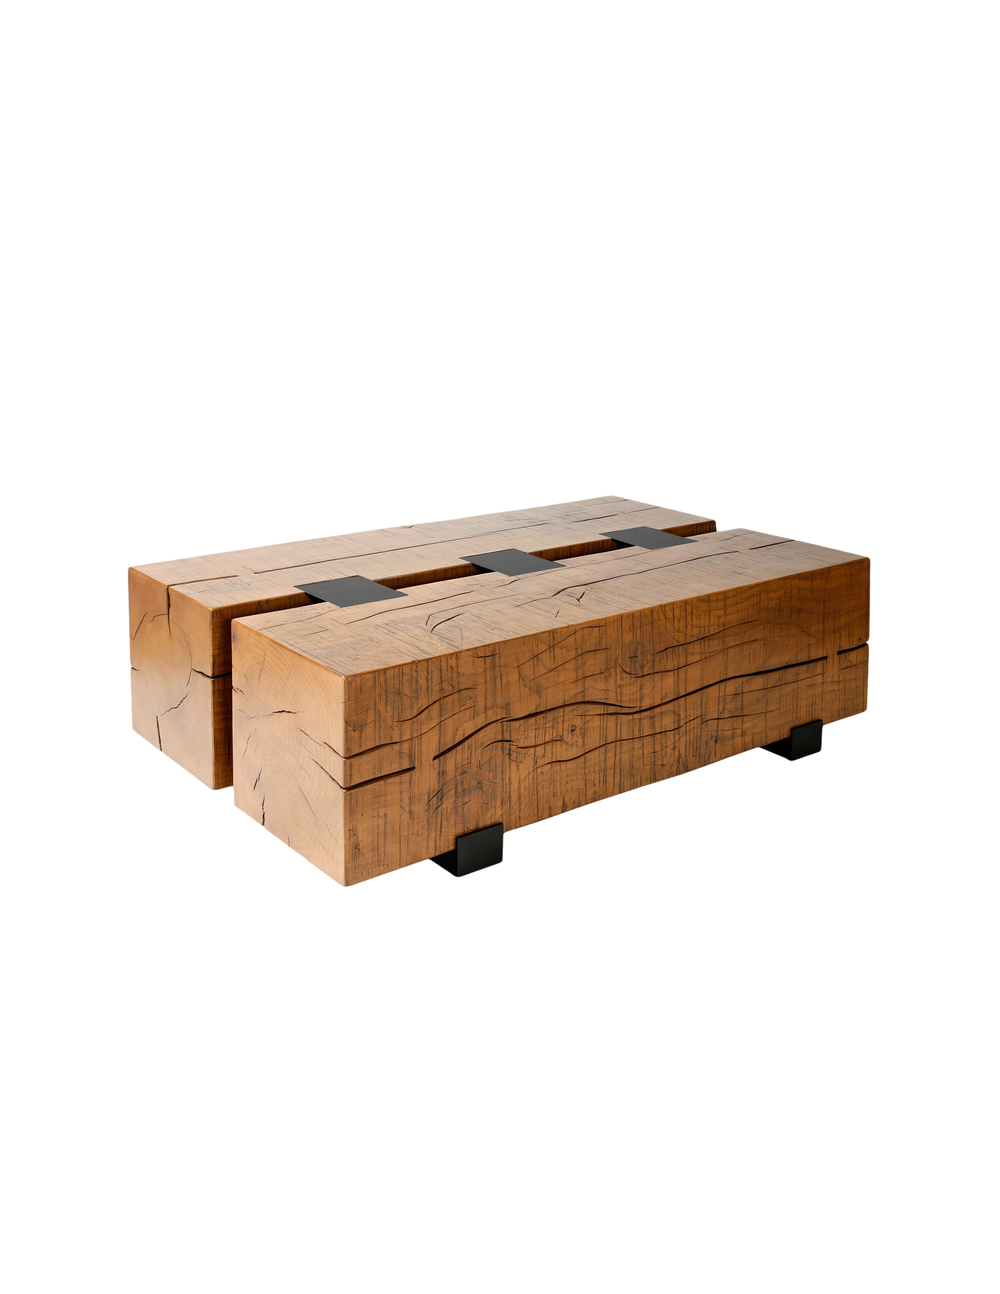 Two Piece Timber Table.jpg